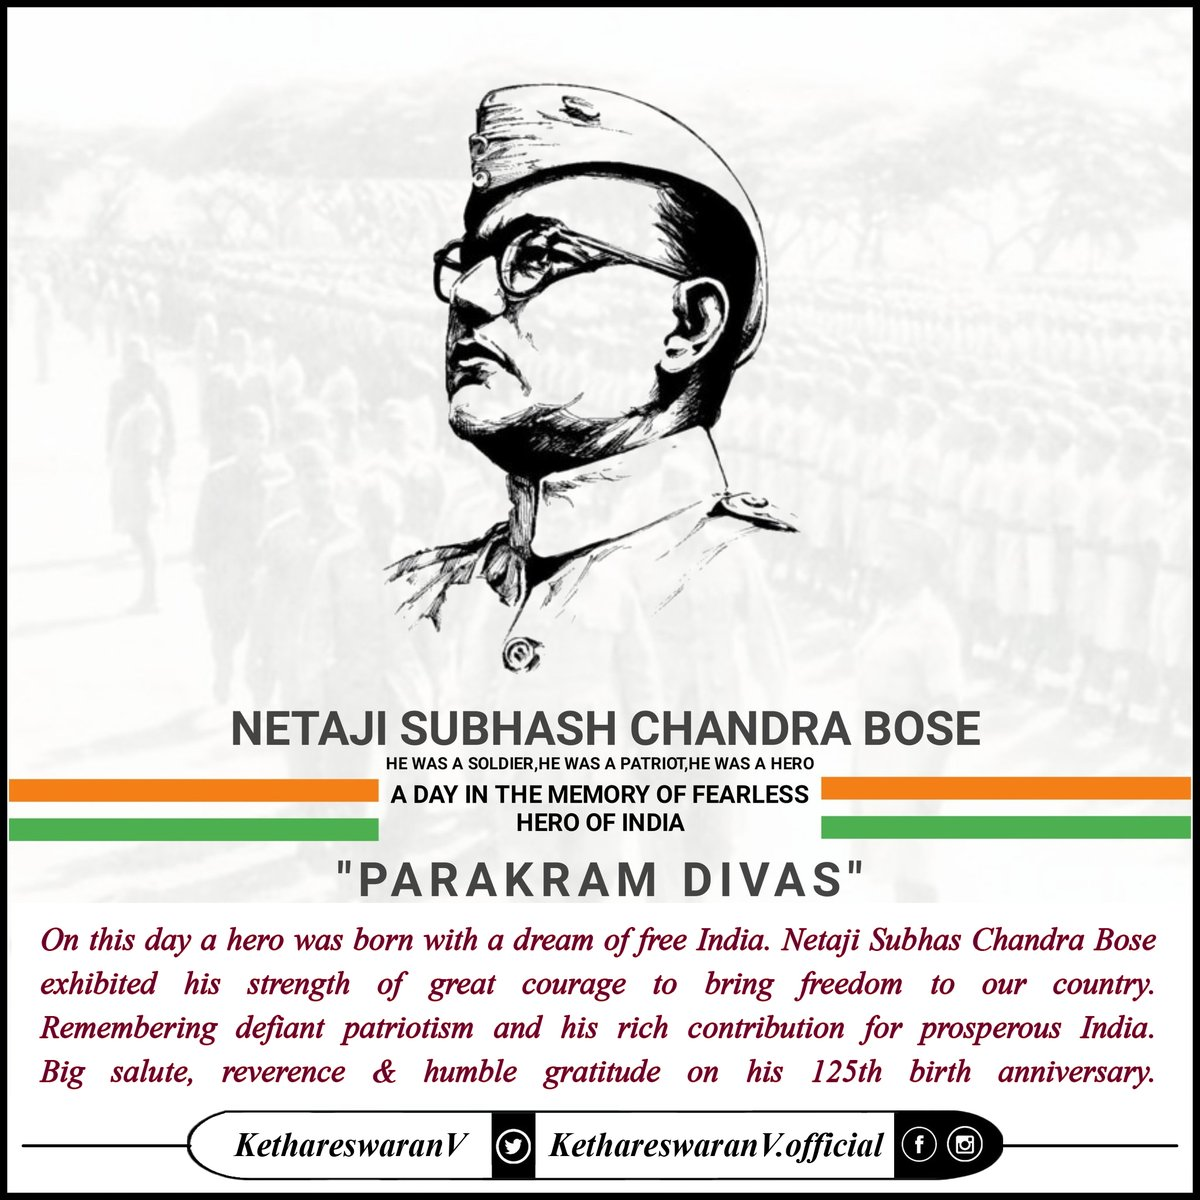 Remembering the brave son of Mother #India #नेताजी #NetajiSubhasChandraBose a devout #Patriot, #Hero, #FreedomFighter & Founder #AzadHindFauj on his 125th birth anniversary #ParakramDivas #पराक्रम_दिवस. Ever grateful for his vision & leadership in our #freedom struggle. #JaiHind